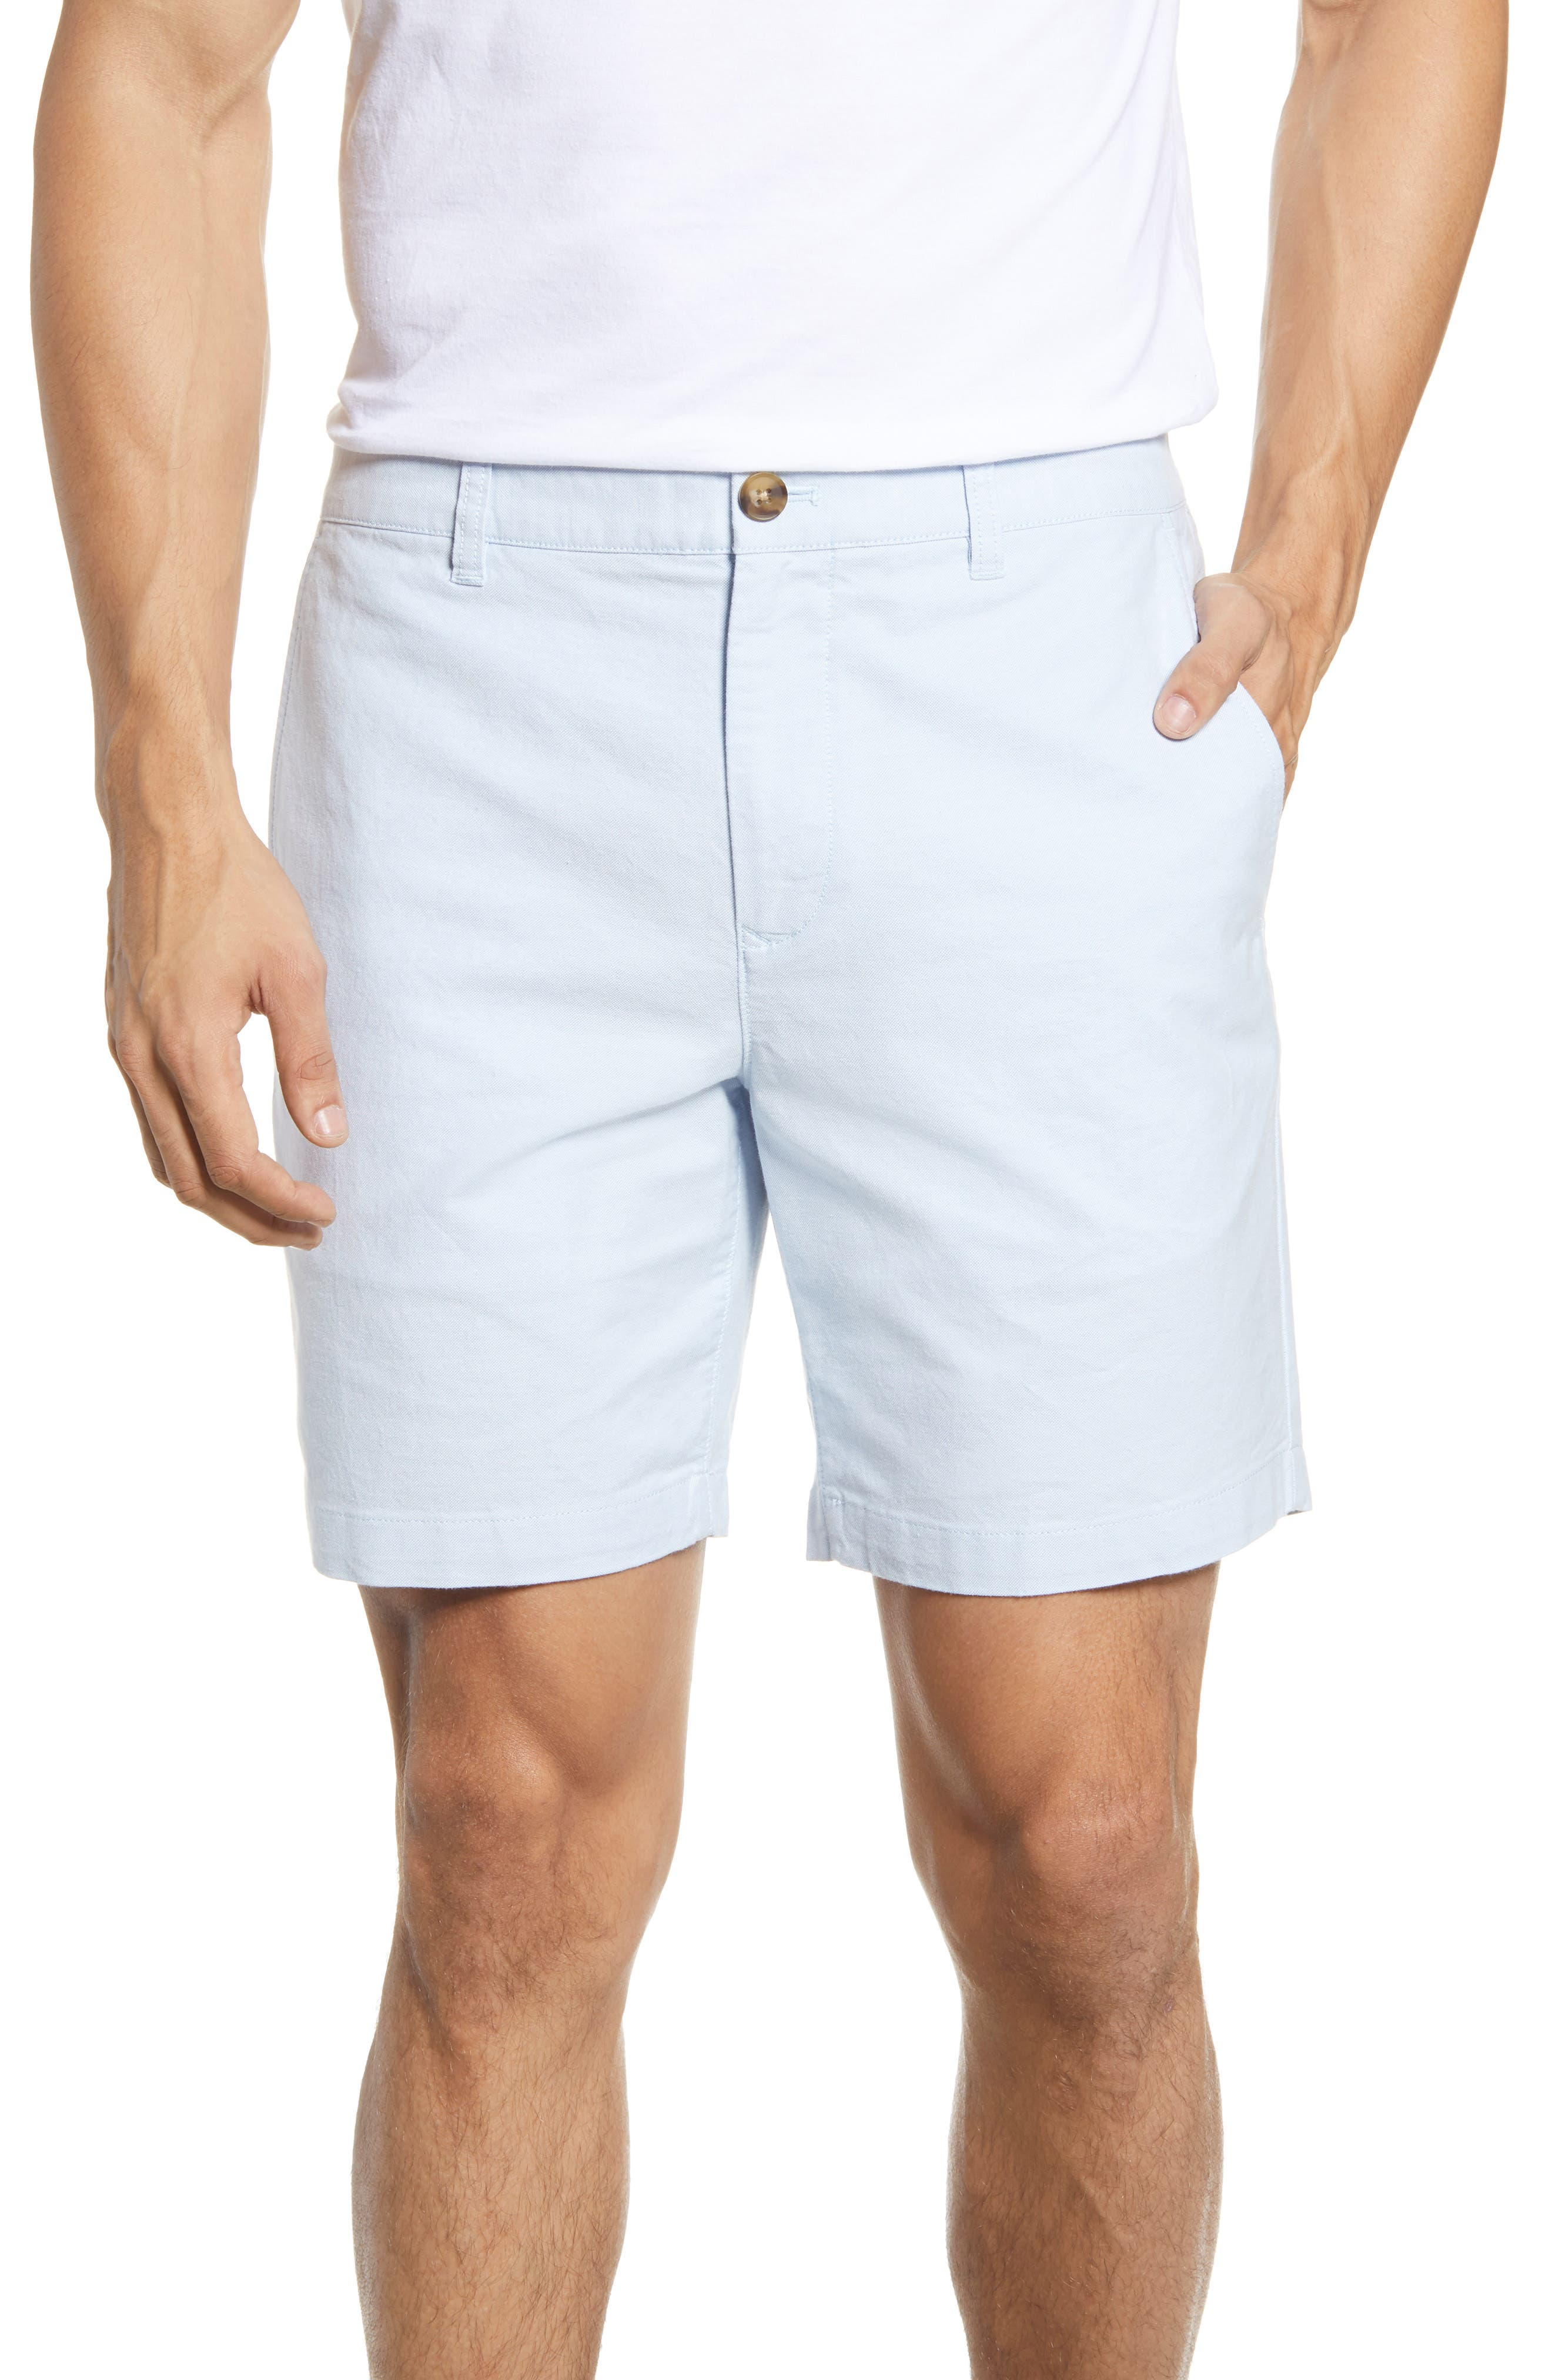 These classic laid-back chino shorts are updated with an oxford weave of stretch cotton that\\\'s washed for softness. Style Name: Bonobos Stretch Oxford Chino Shorts. Style Number: 6016622. Available in stores.